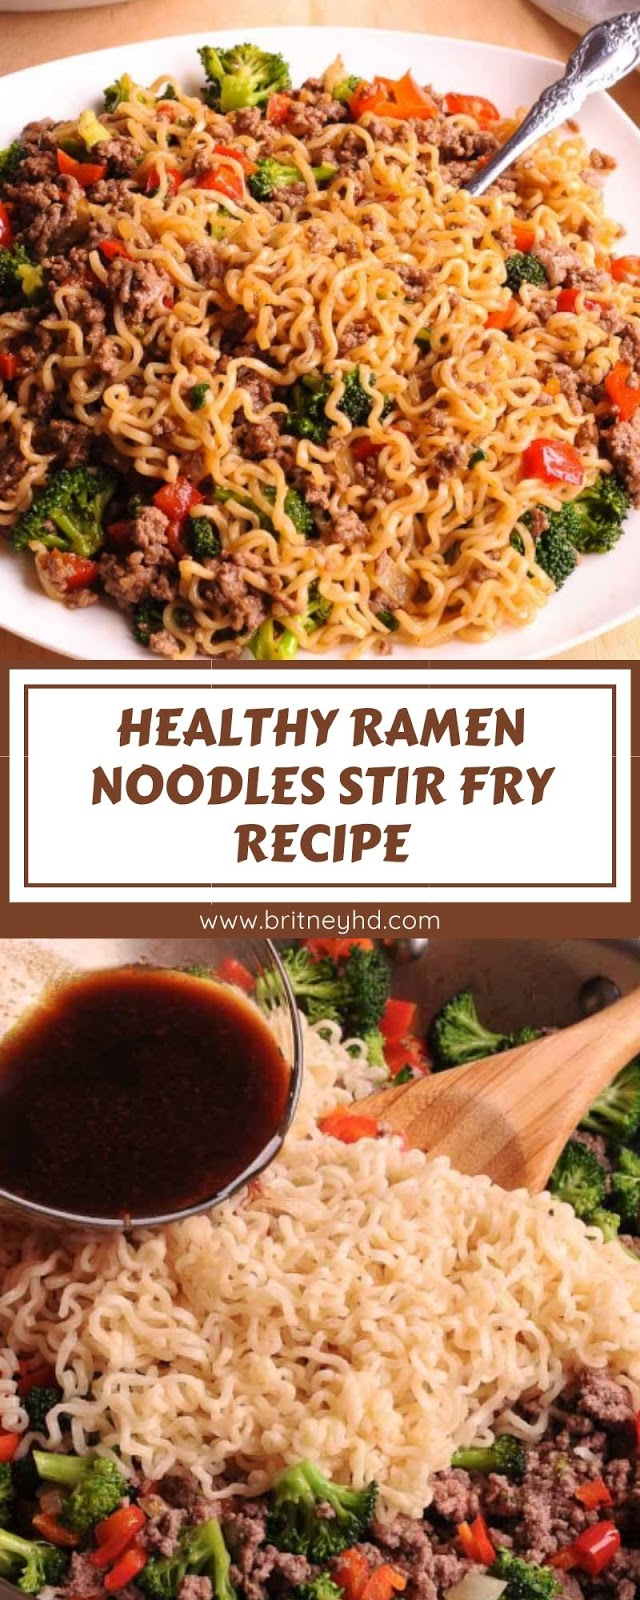 HEALTHY RAMEN NOODLES STIR FRY RECIPE